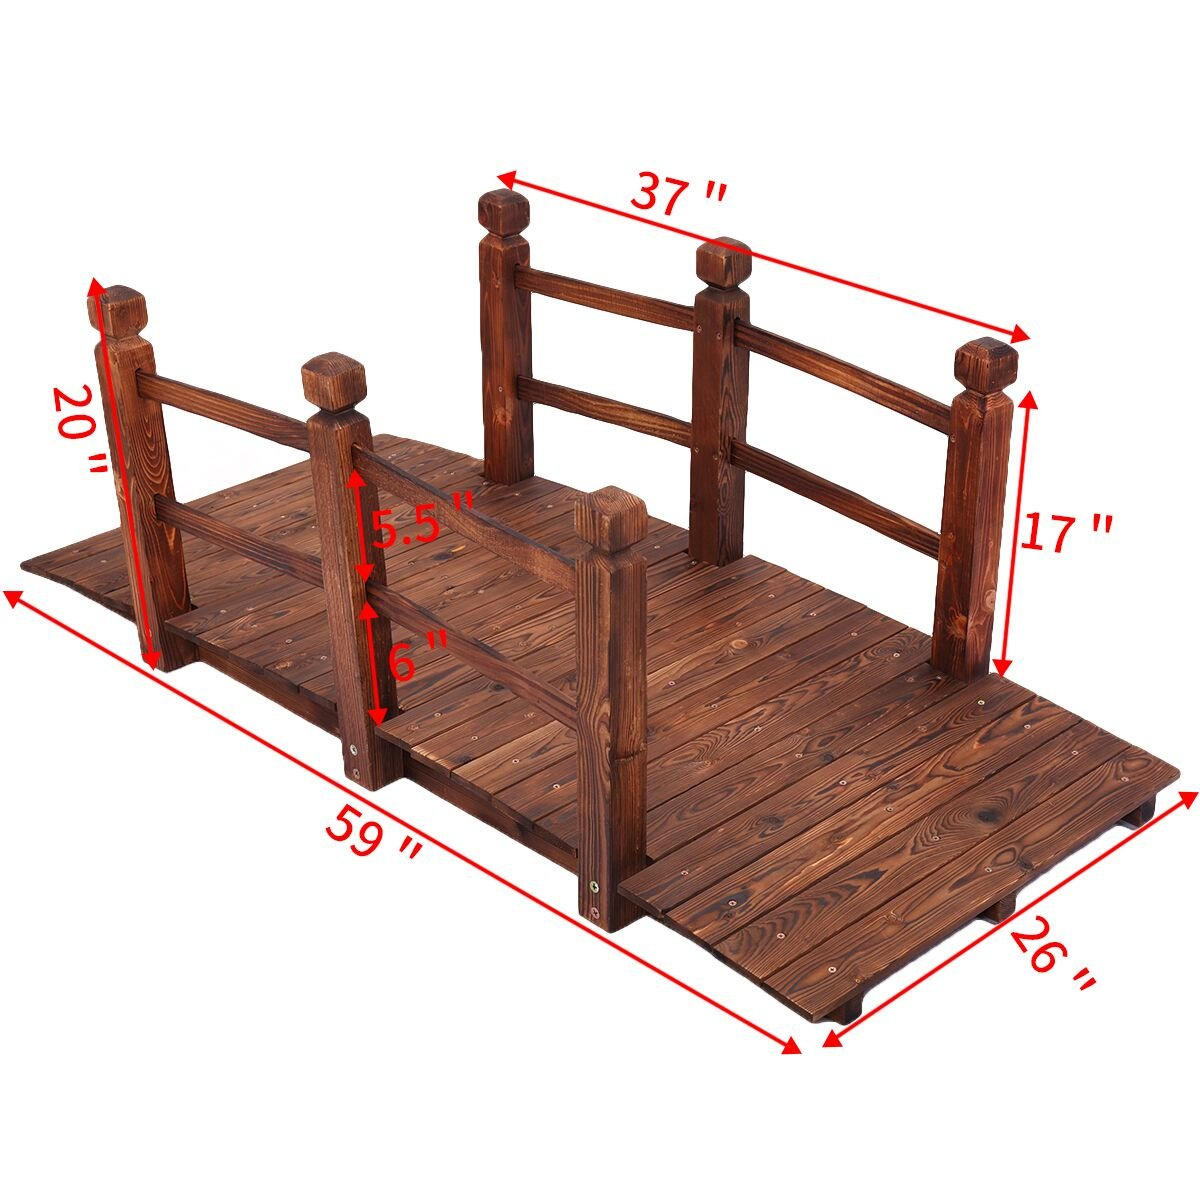 JAXPETY 5'' Wooden Bridge Stained Finish Decorative Solid Wood Garden Pond Arch Walkway w/Railings by JAXPETY (Image #3)